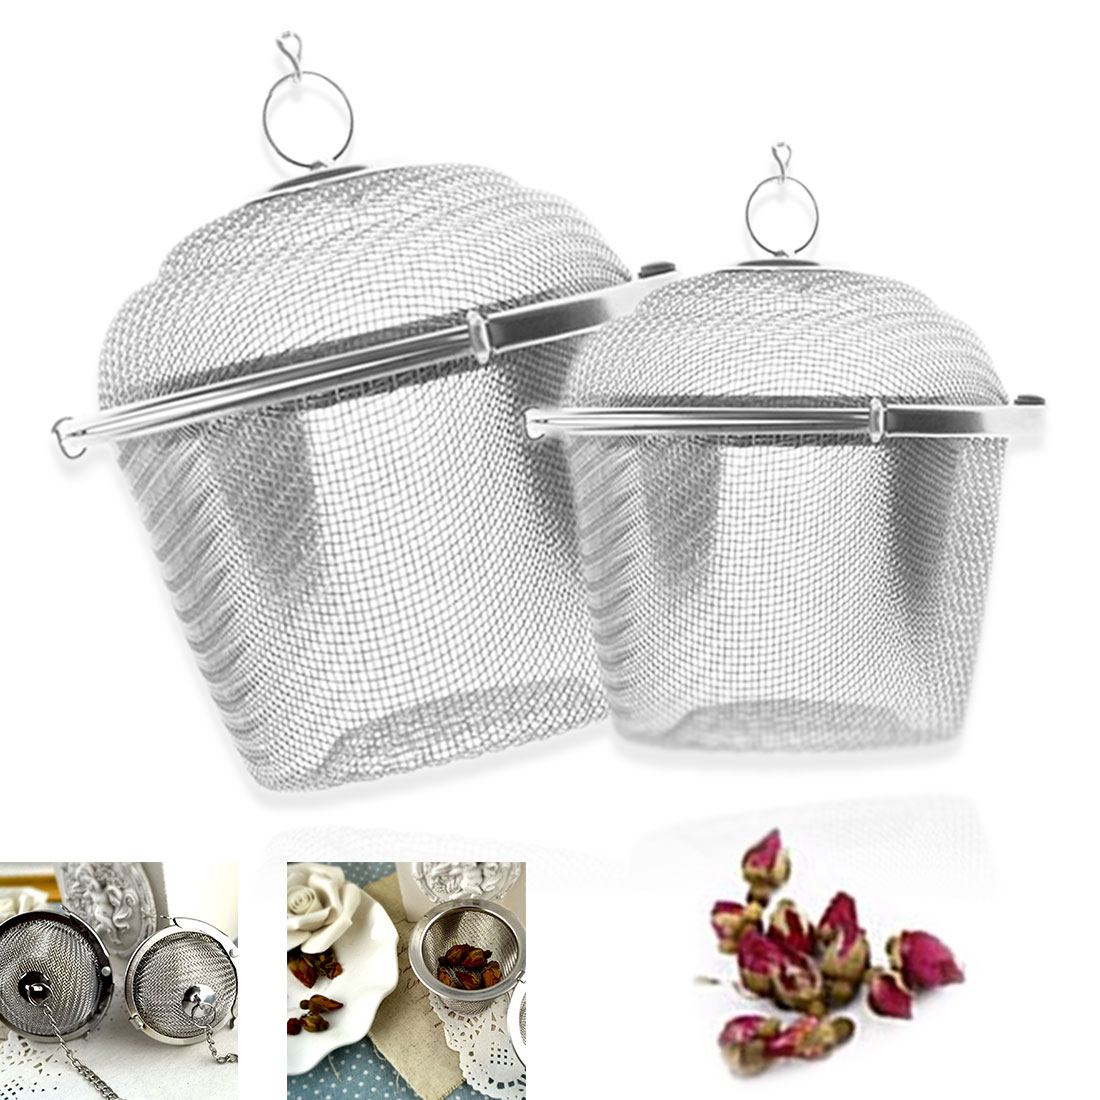 Tea Ball Strainer For Loose Leaf Tea Spices Seasonings Filters Stainless Steel Tea Interval Diffuser